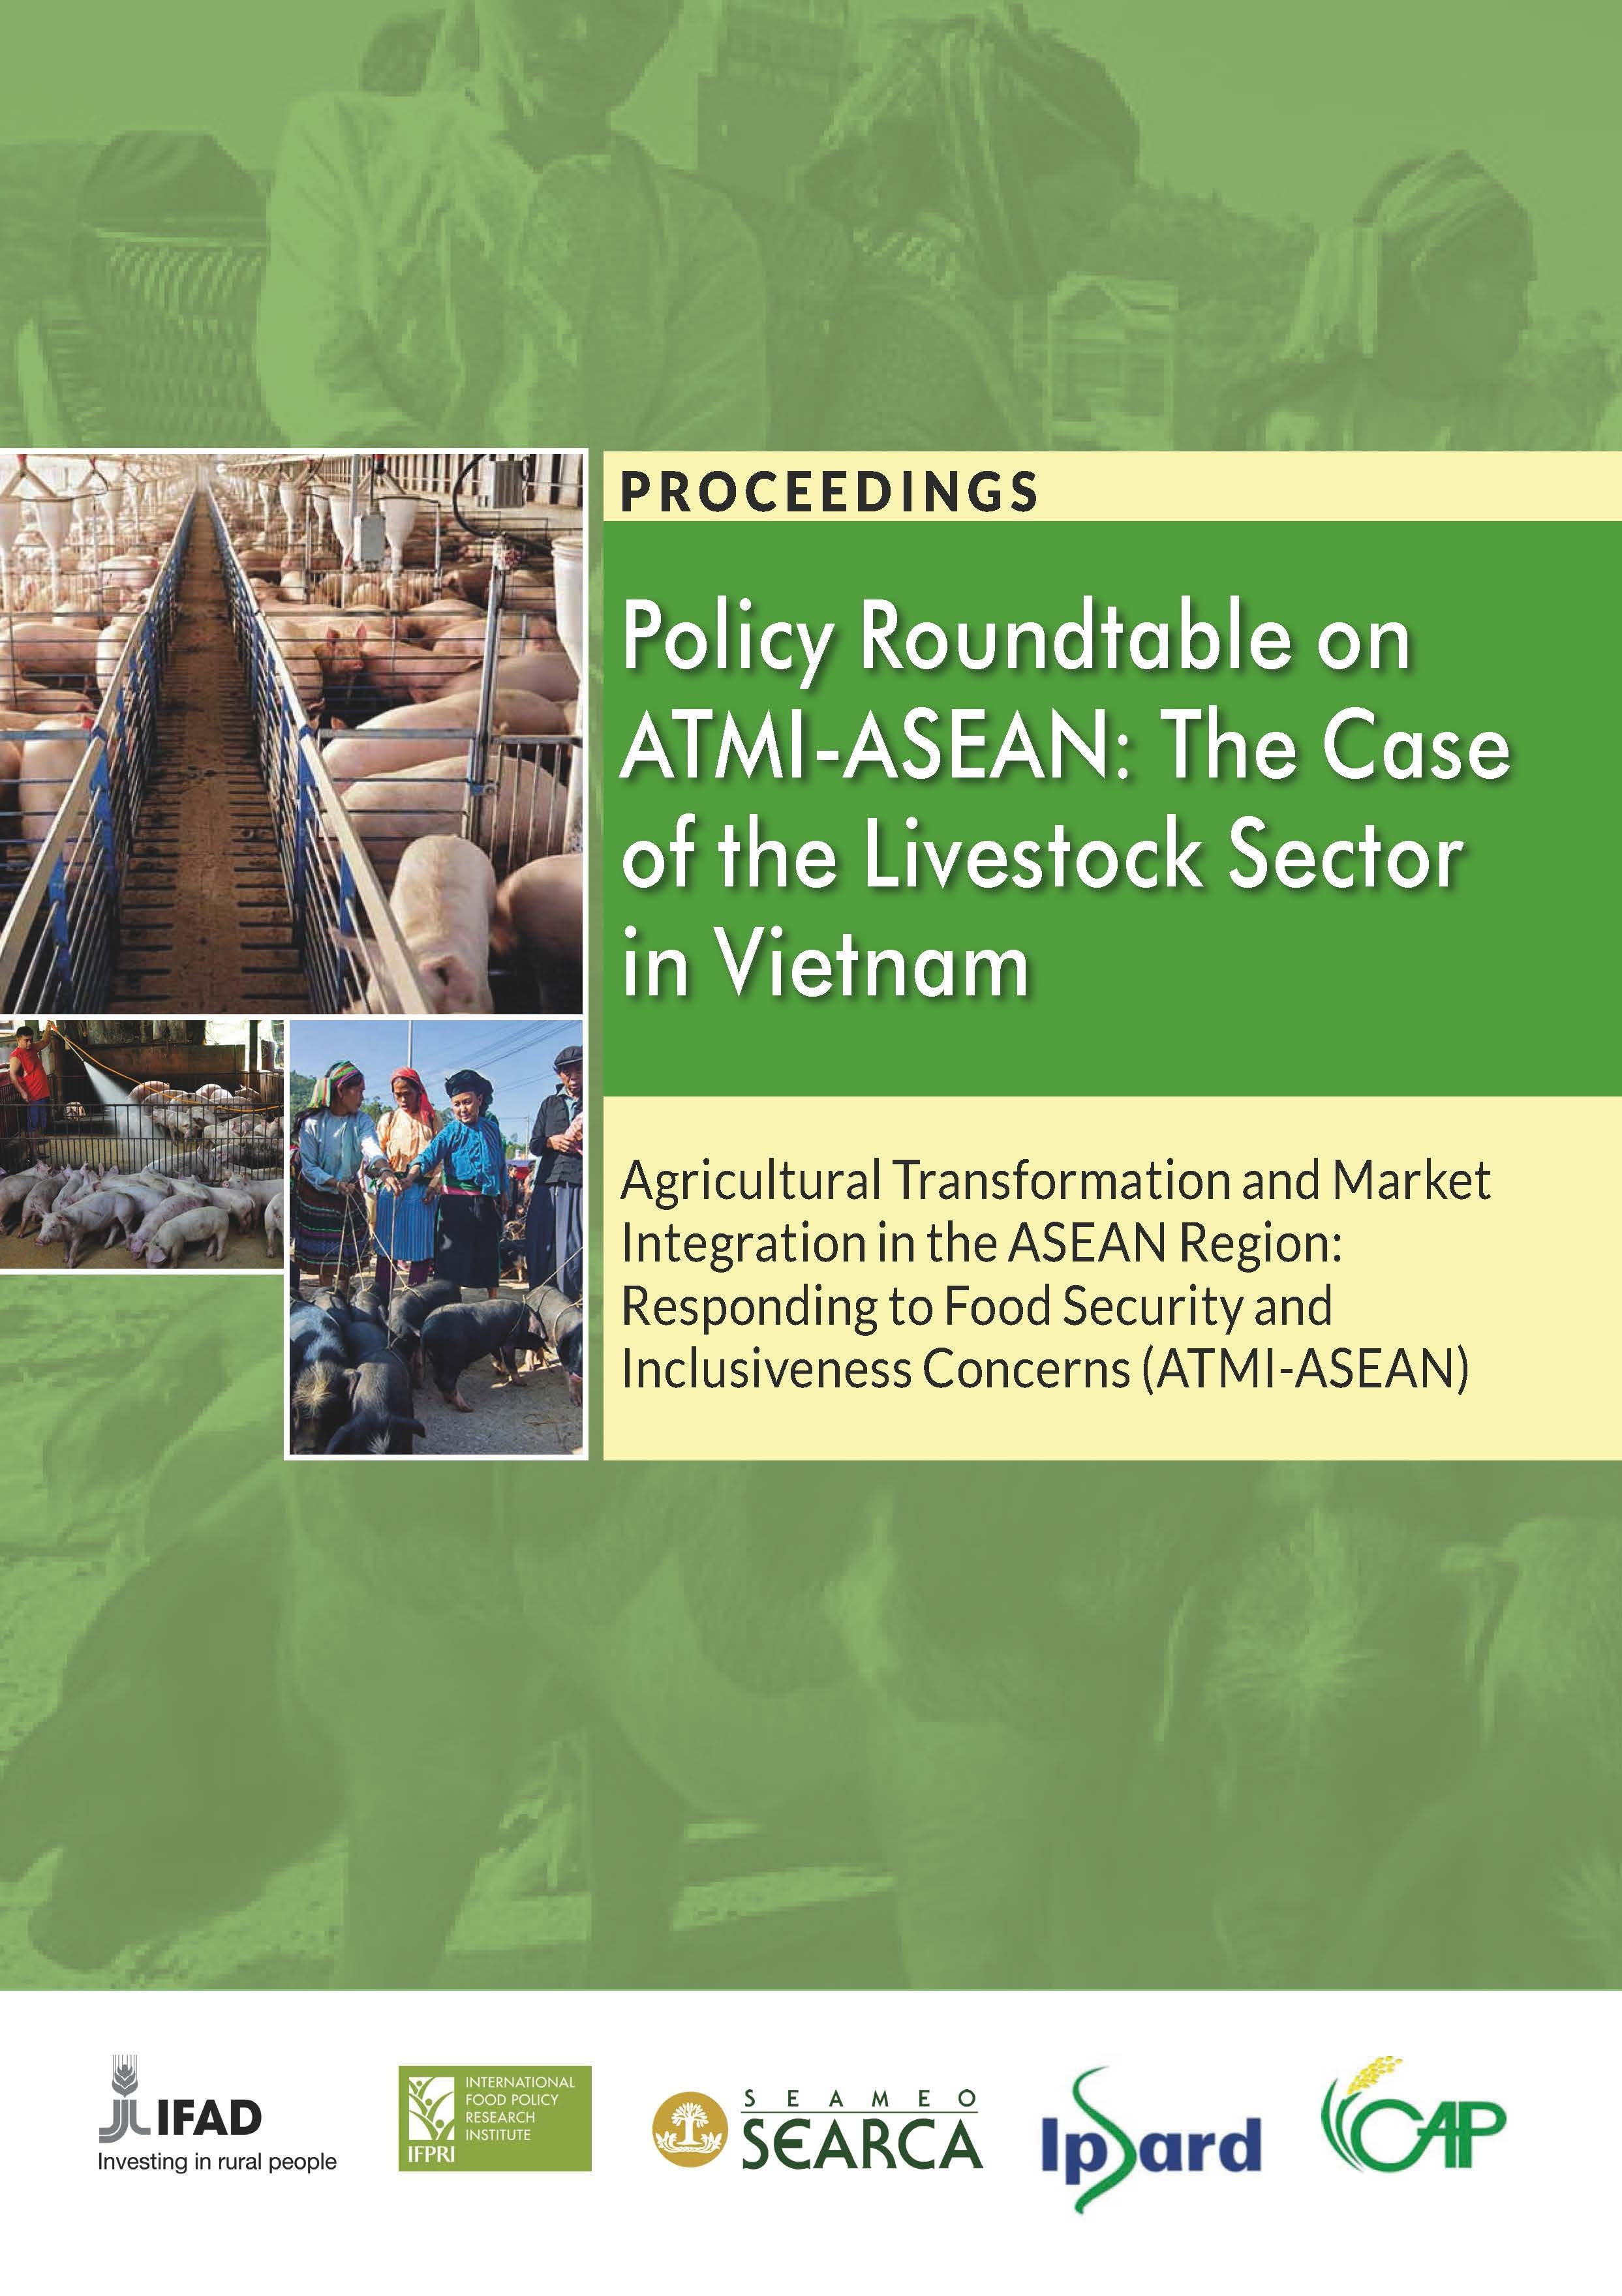 PROCEEDINGS: Policy Roundtable on ATMI-ASEAN: The Case of the Livestock Sector in Vietnam